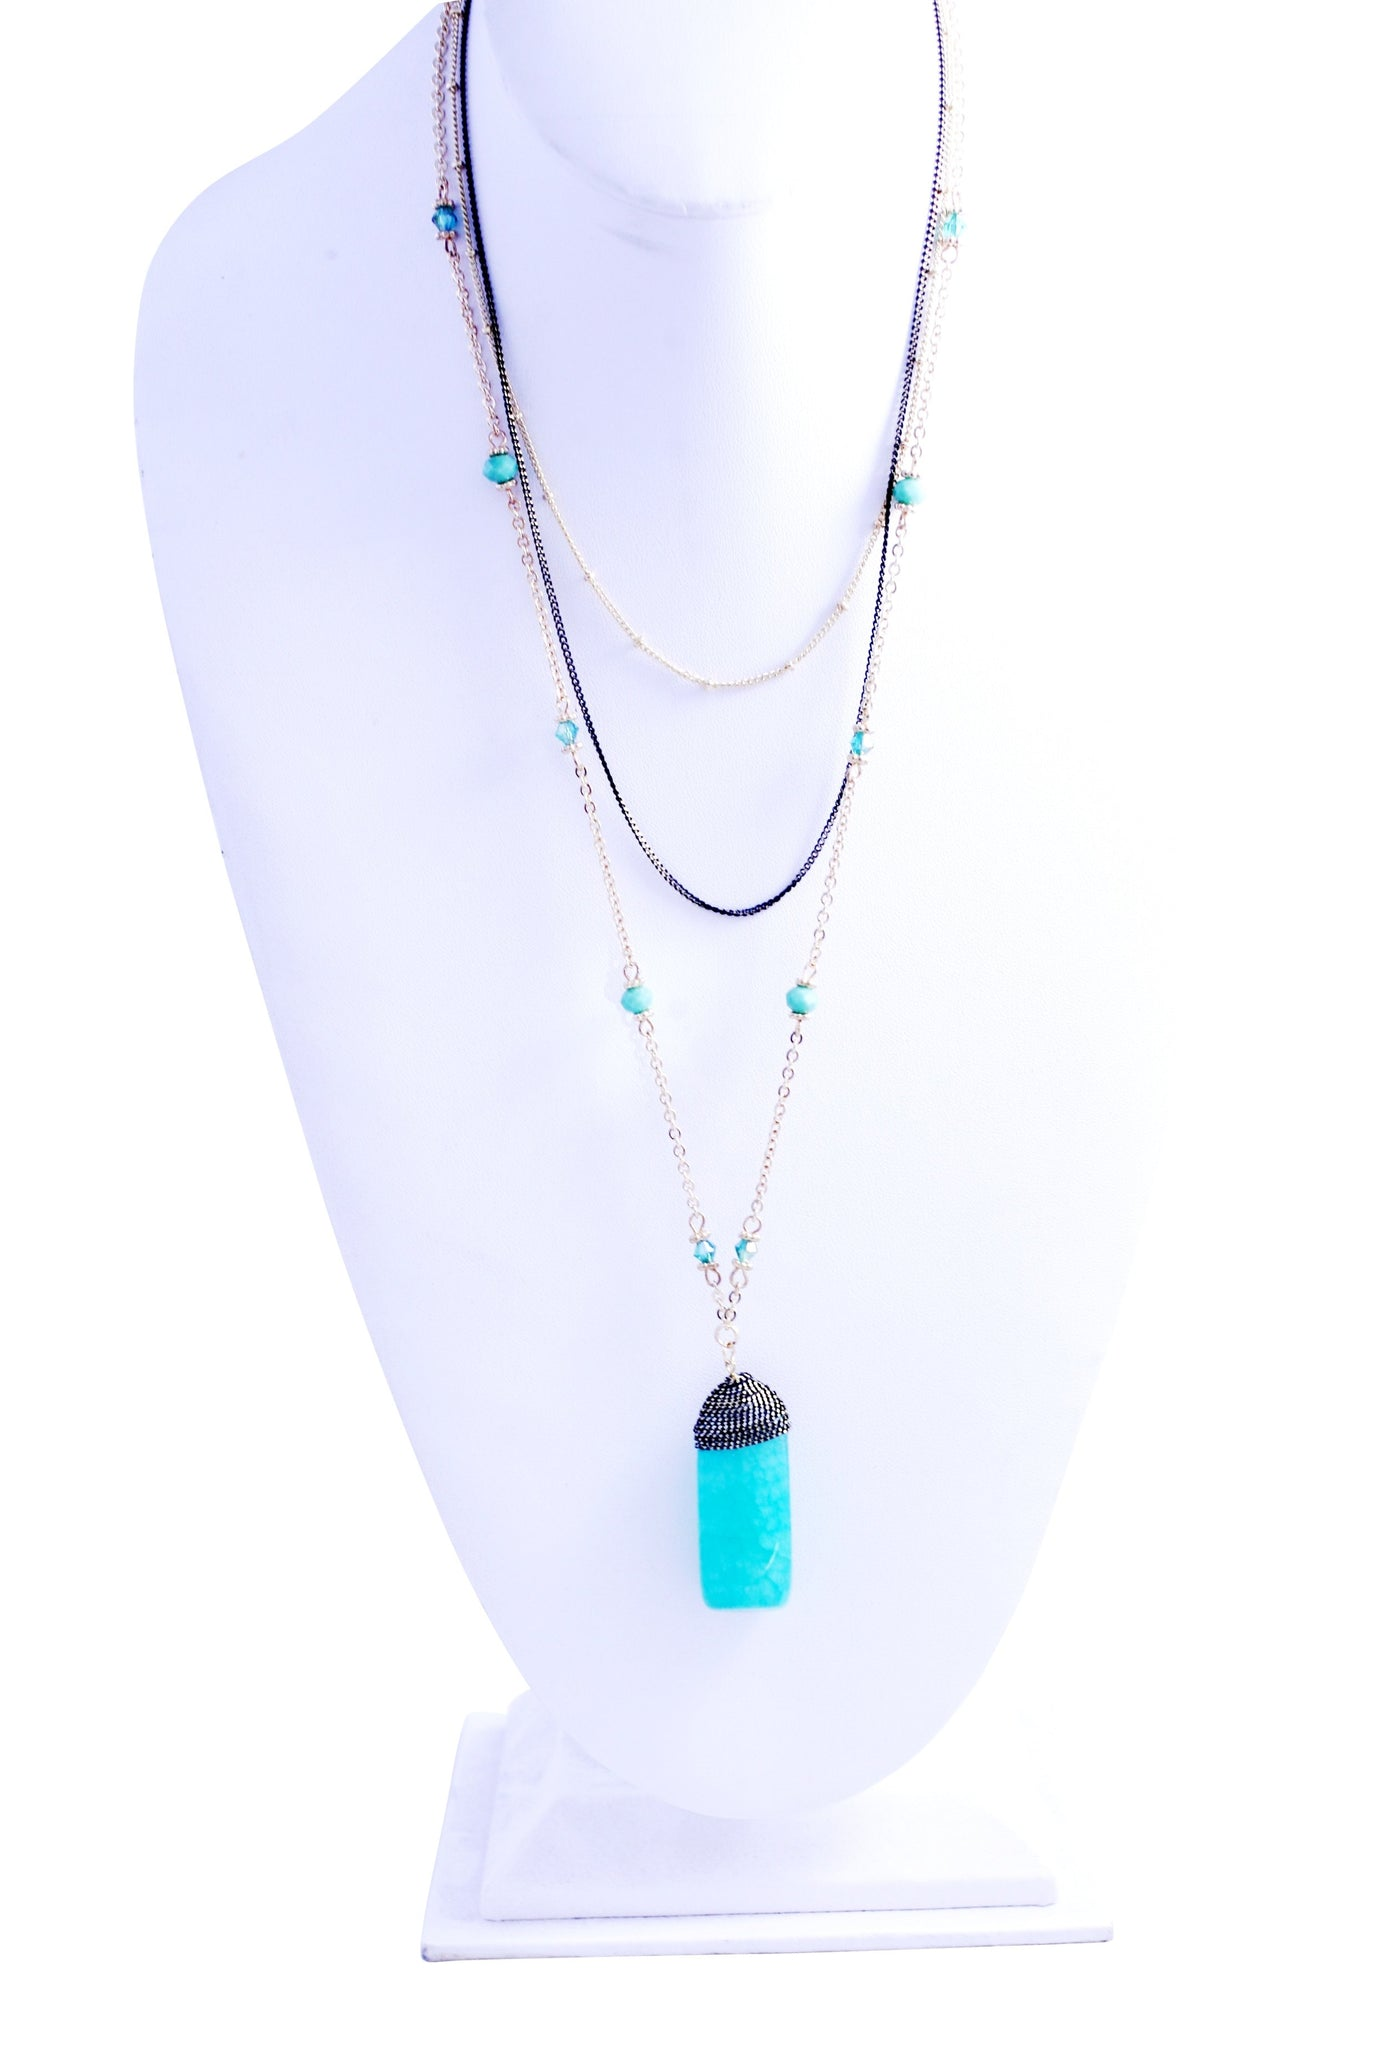 Gold and Hematite Multi Chain bead station necklace set with a dangling agate natural stone dyed pendant 687S6025